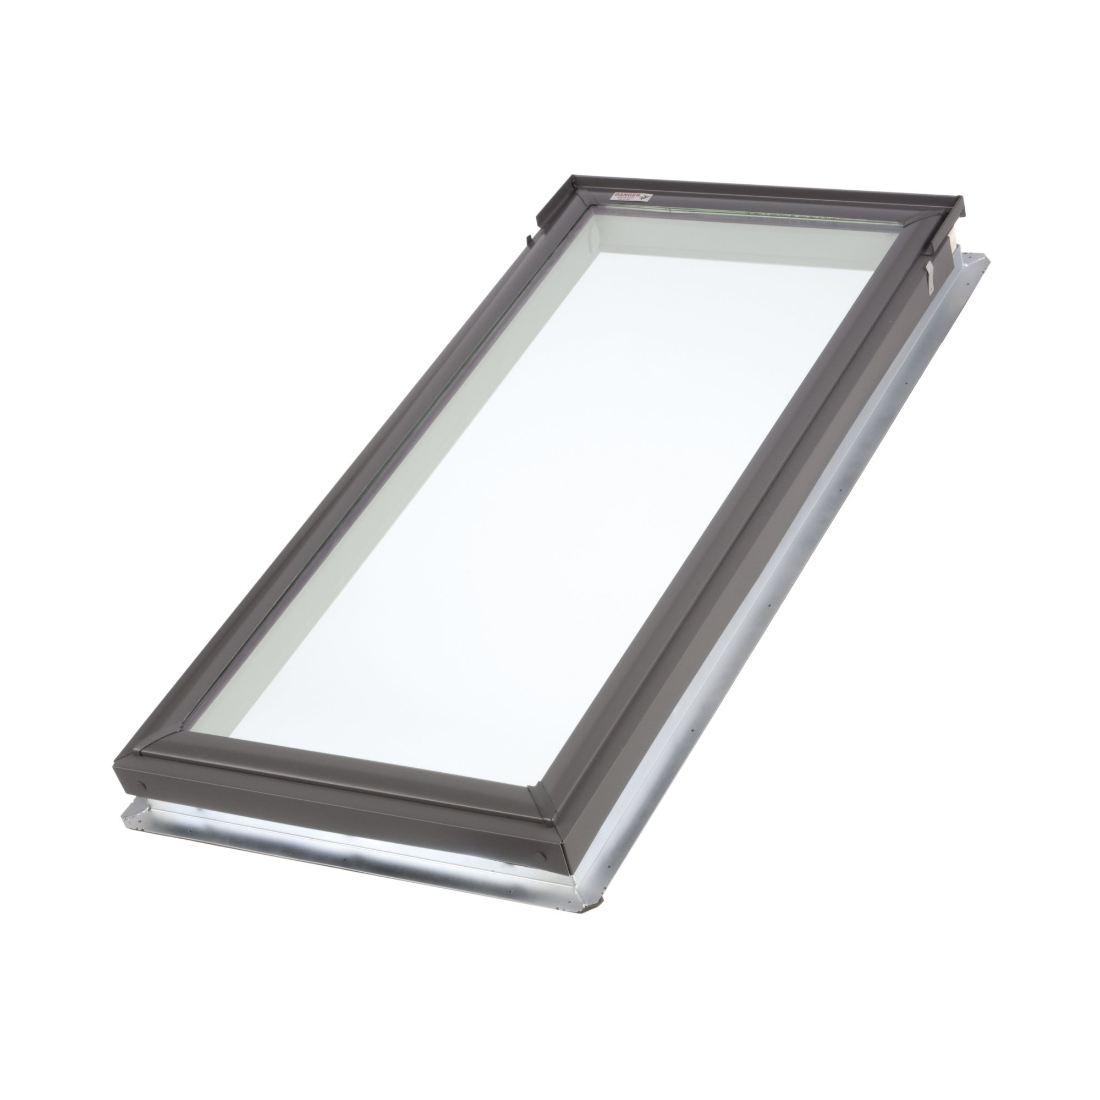 Fixed Skylight 780 x 980mm